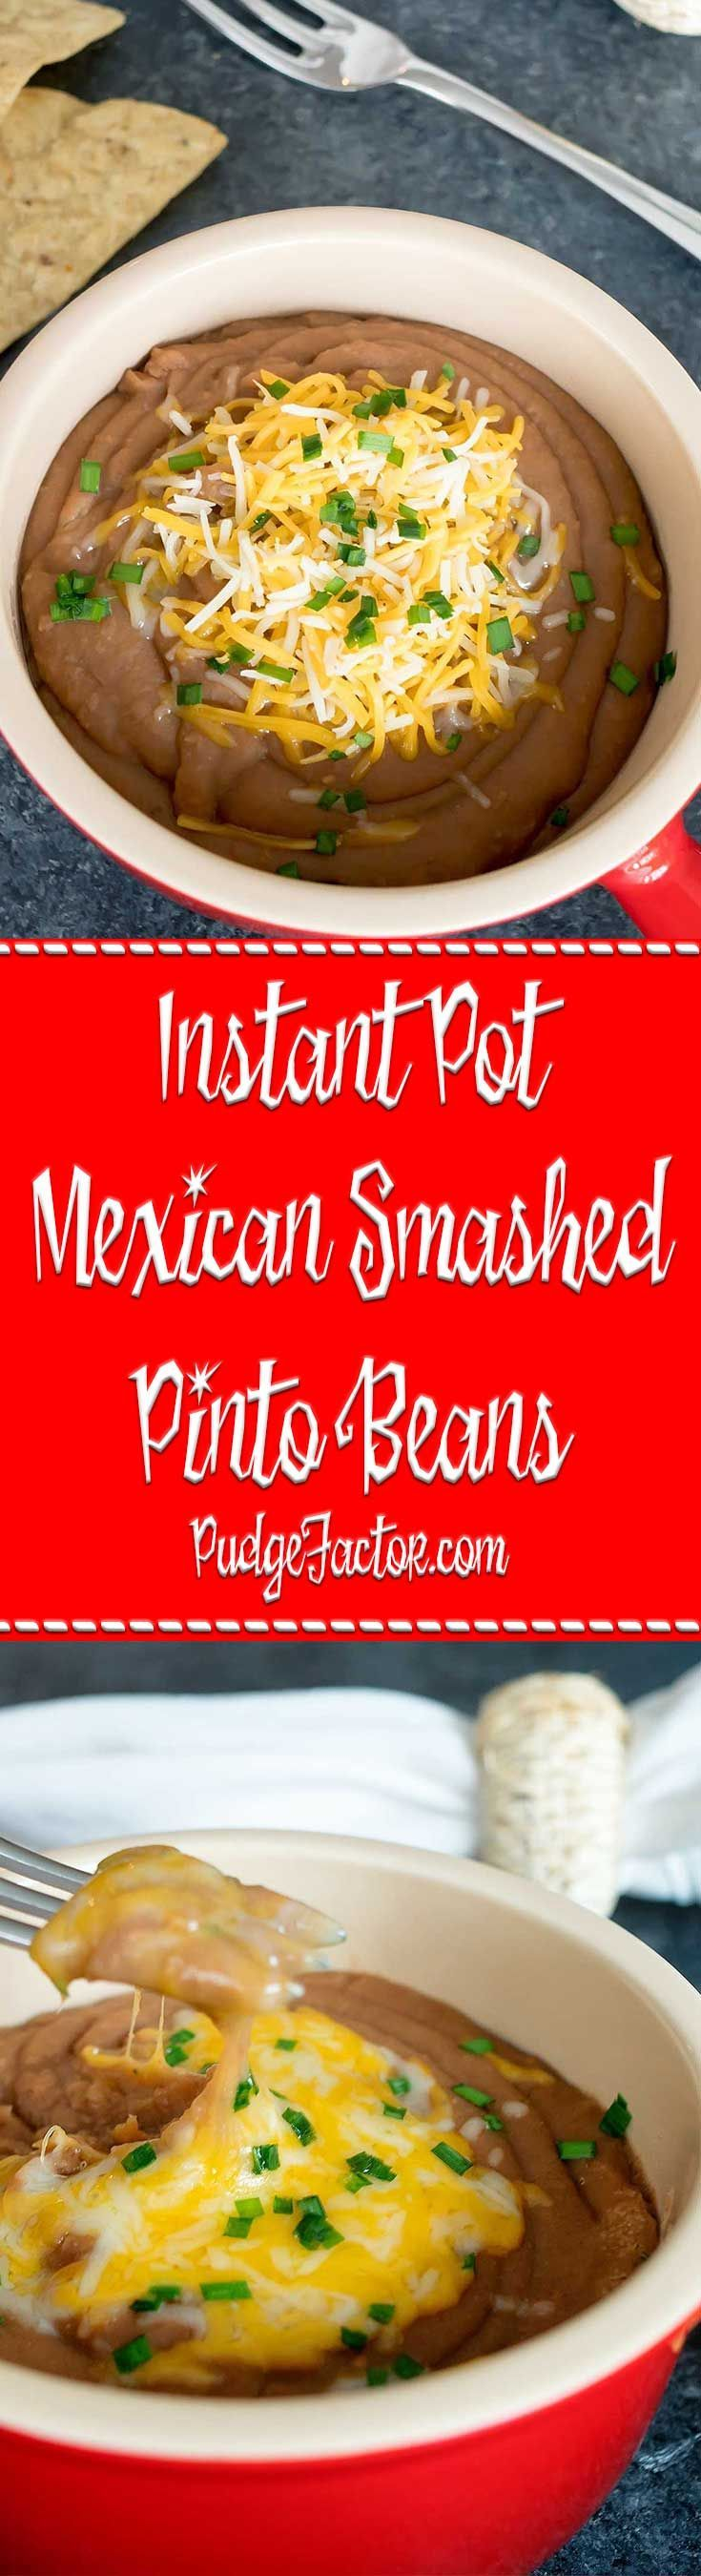 Photo of Instant Pot Mexican Smashed Pinto Beans